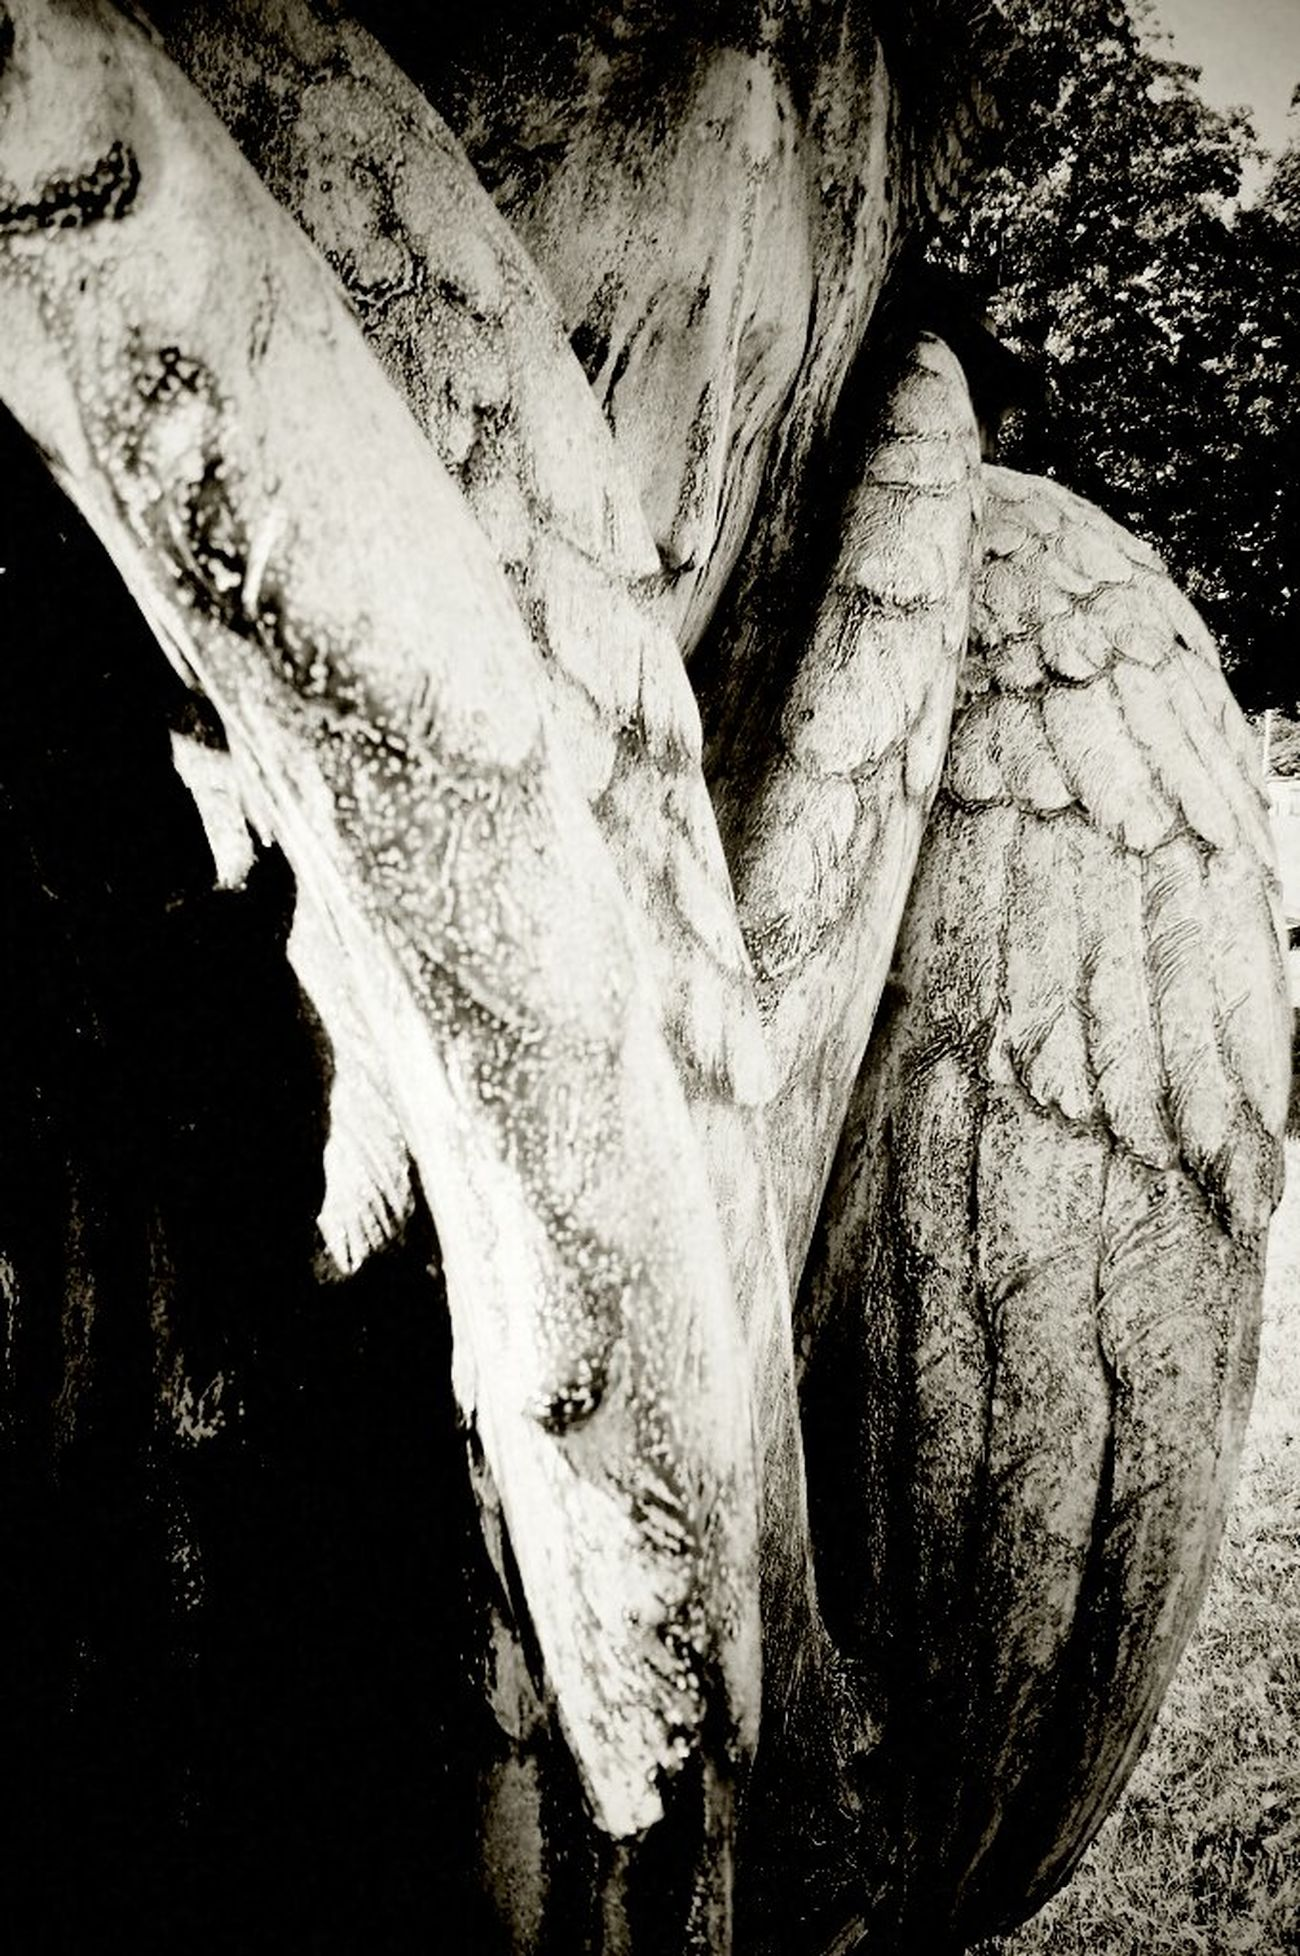 Angel Beauty In Nature Blackandwhite Cemetery Cemetery Photography Cemetery_shots Close-up Day Detail Graveyard Graveyard Beauty Nature No People Outdoors